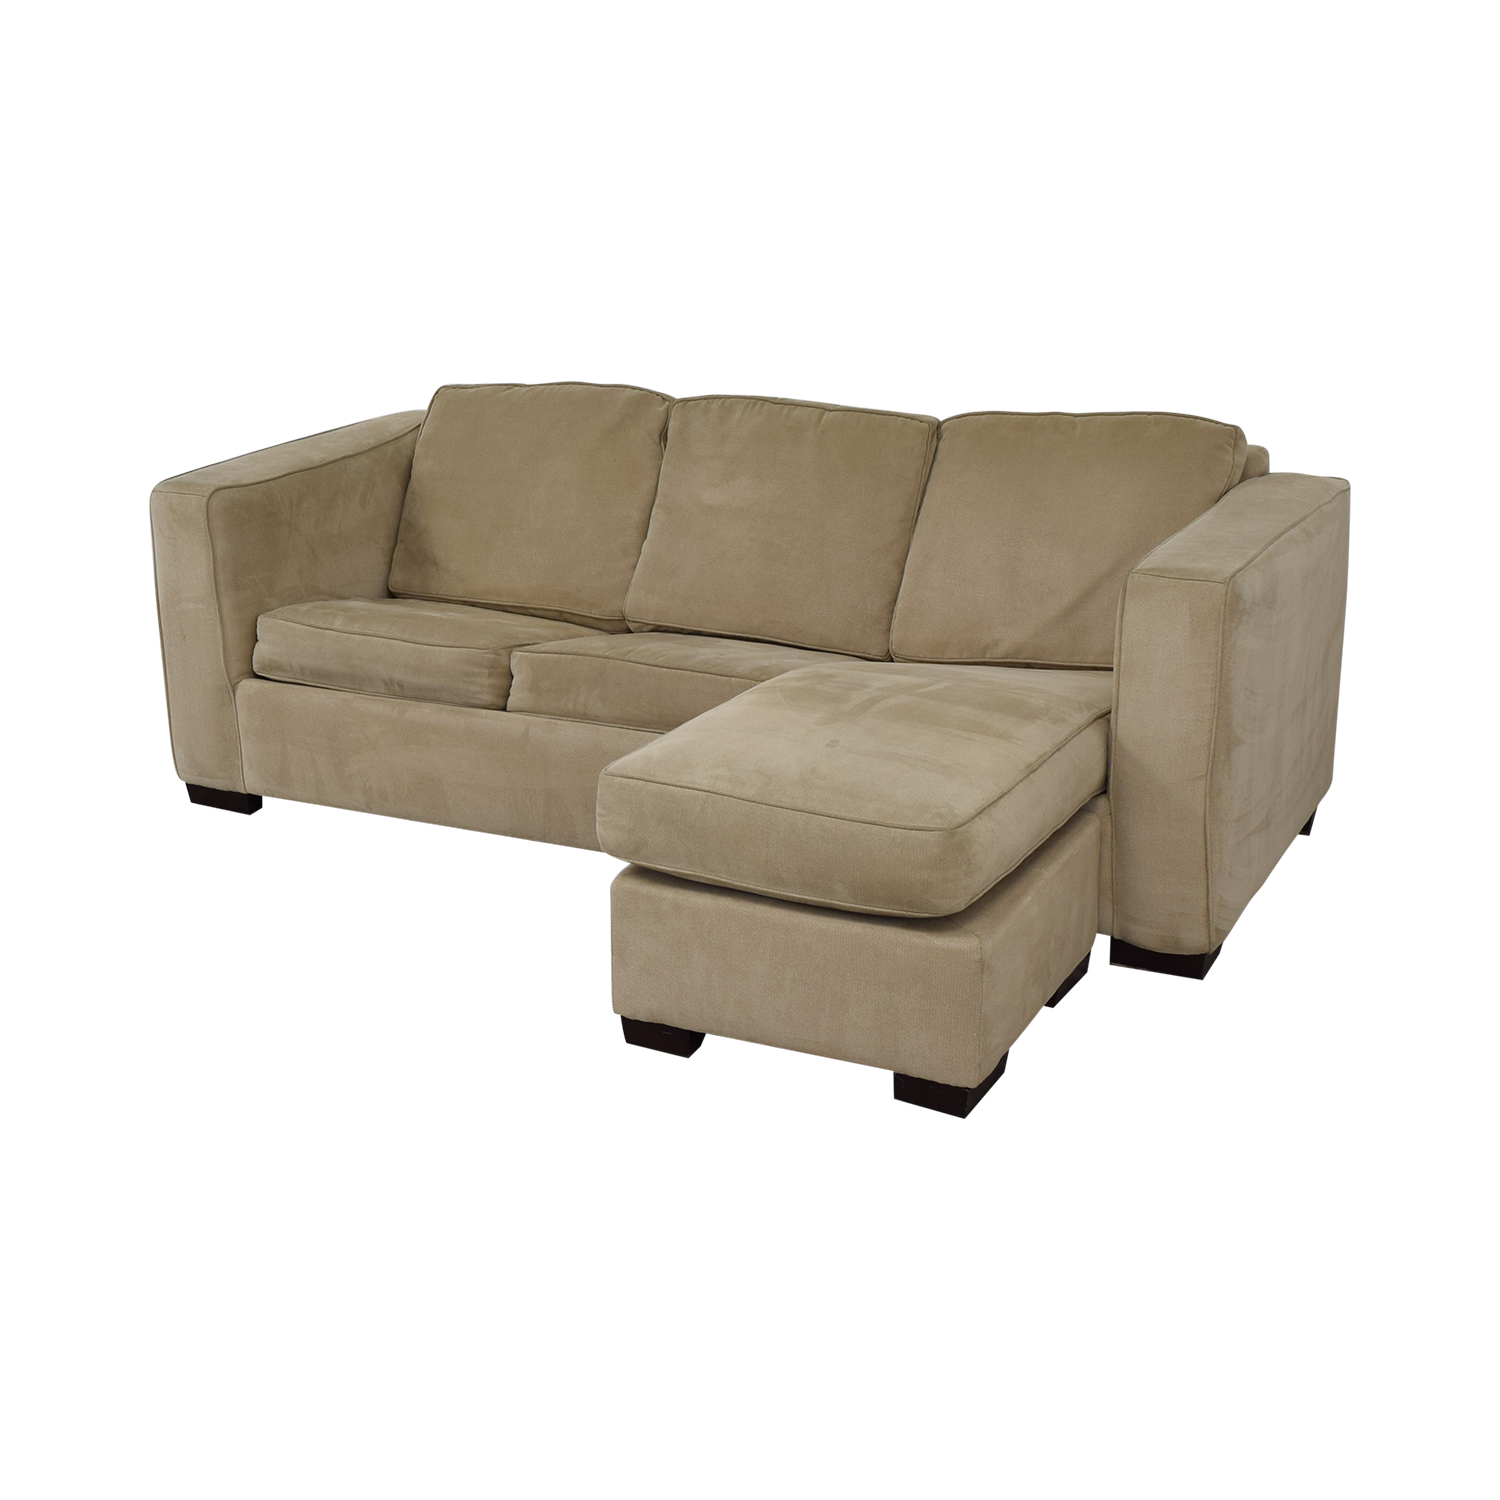 buy Bauhaus Furniture Queen Sleeper Sofa Sectional with Chaise Bauhaus Furniture Sofas